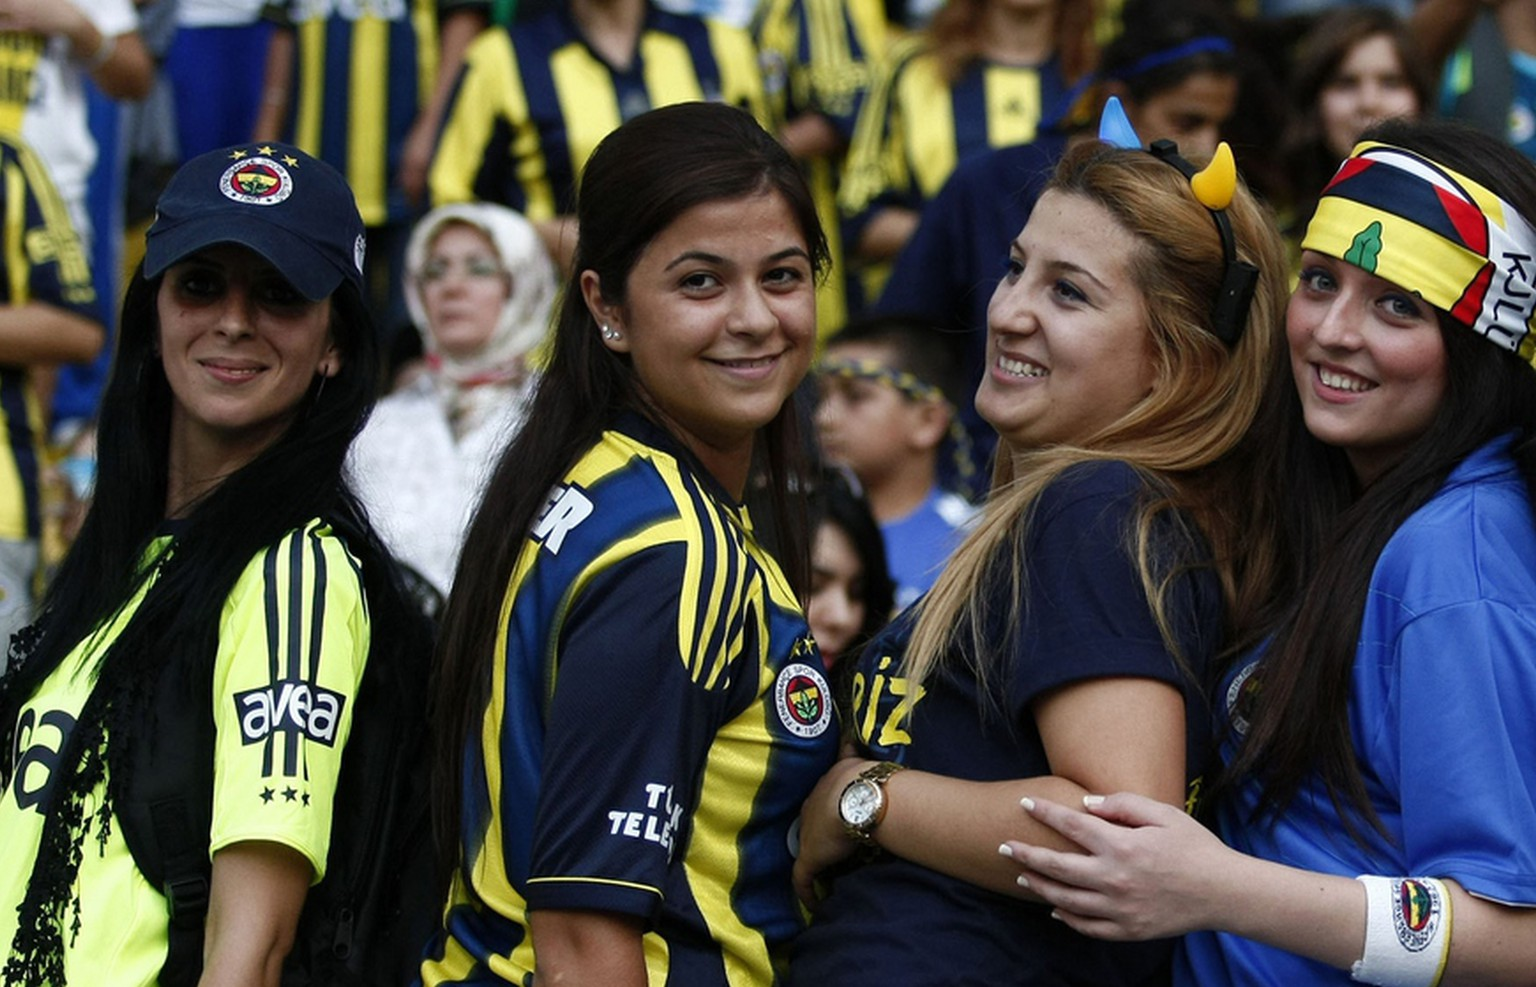 More than 41,000 women and children filled Sukru Saracoglu Stadium to watch Fenerbahce play against Manisapor in Turkish League soccer match in Istanbul, Turkey, Tuesday, Sept. 20. 2011. Turkey came up with a radical solution for tackling crowd violence at football matches _ ban the men and let only women and children in. Under new rules approved by Turkey's football association, only women and children under the age of 12 will be admitted to watch games _ for free _ involving teams which have been sanctioned for unruly behavior by their fans. Fenerbahce was ordered to play two home matches without any spectators after its fans invaded the pitch during a friendly against Ukrainian champion Shakhtar Donetsk.(AP Photo)